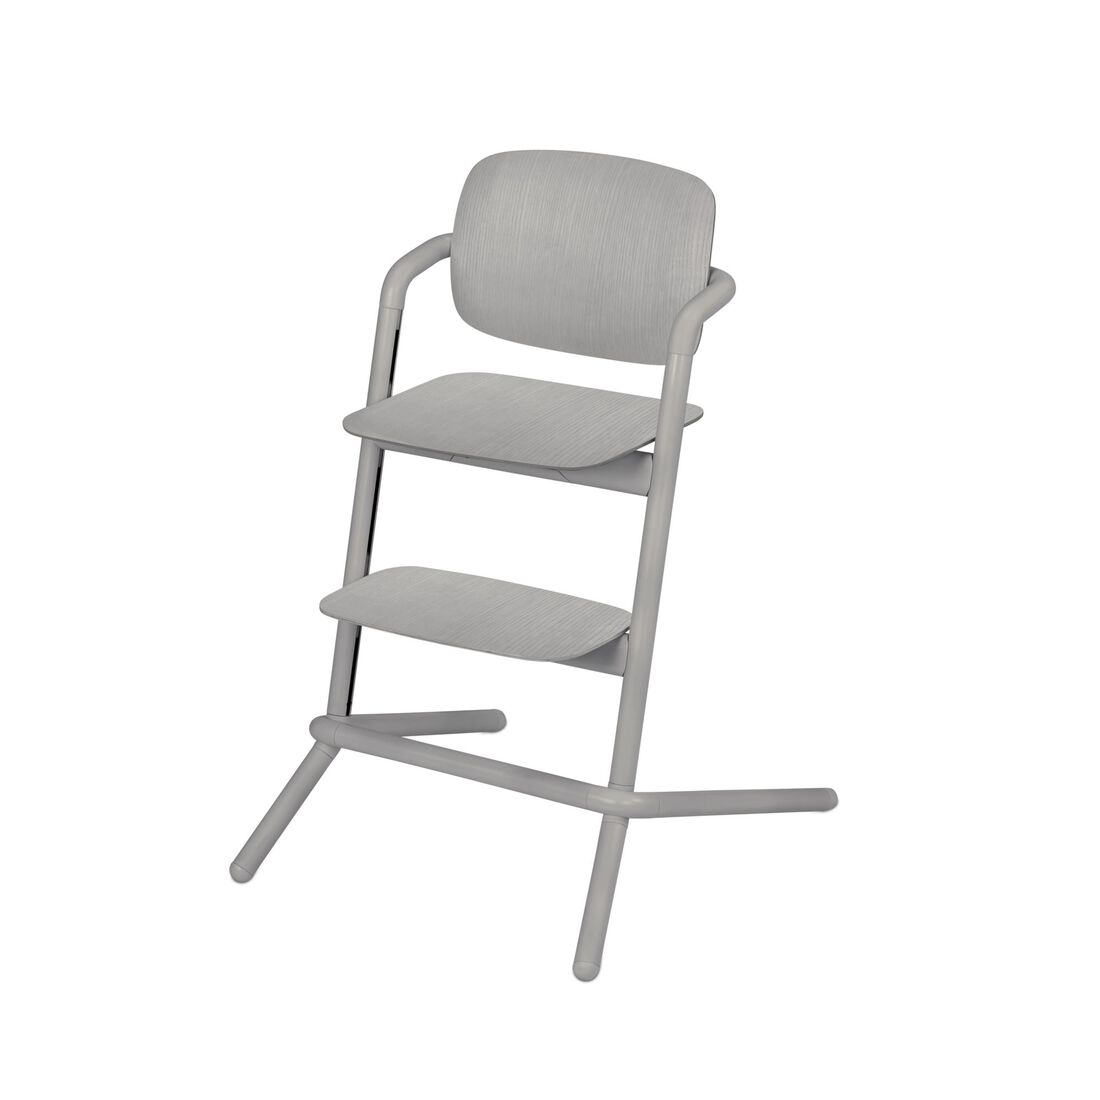 CYBEX Lemo Chair - Storm Grey (Wood) in Storm Grey (Wood) large image number 1